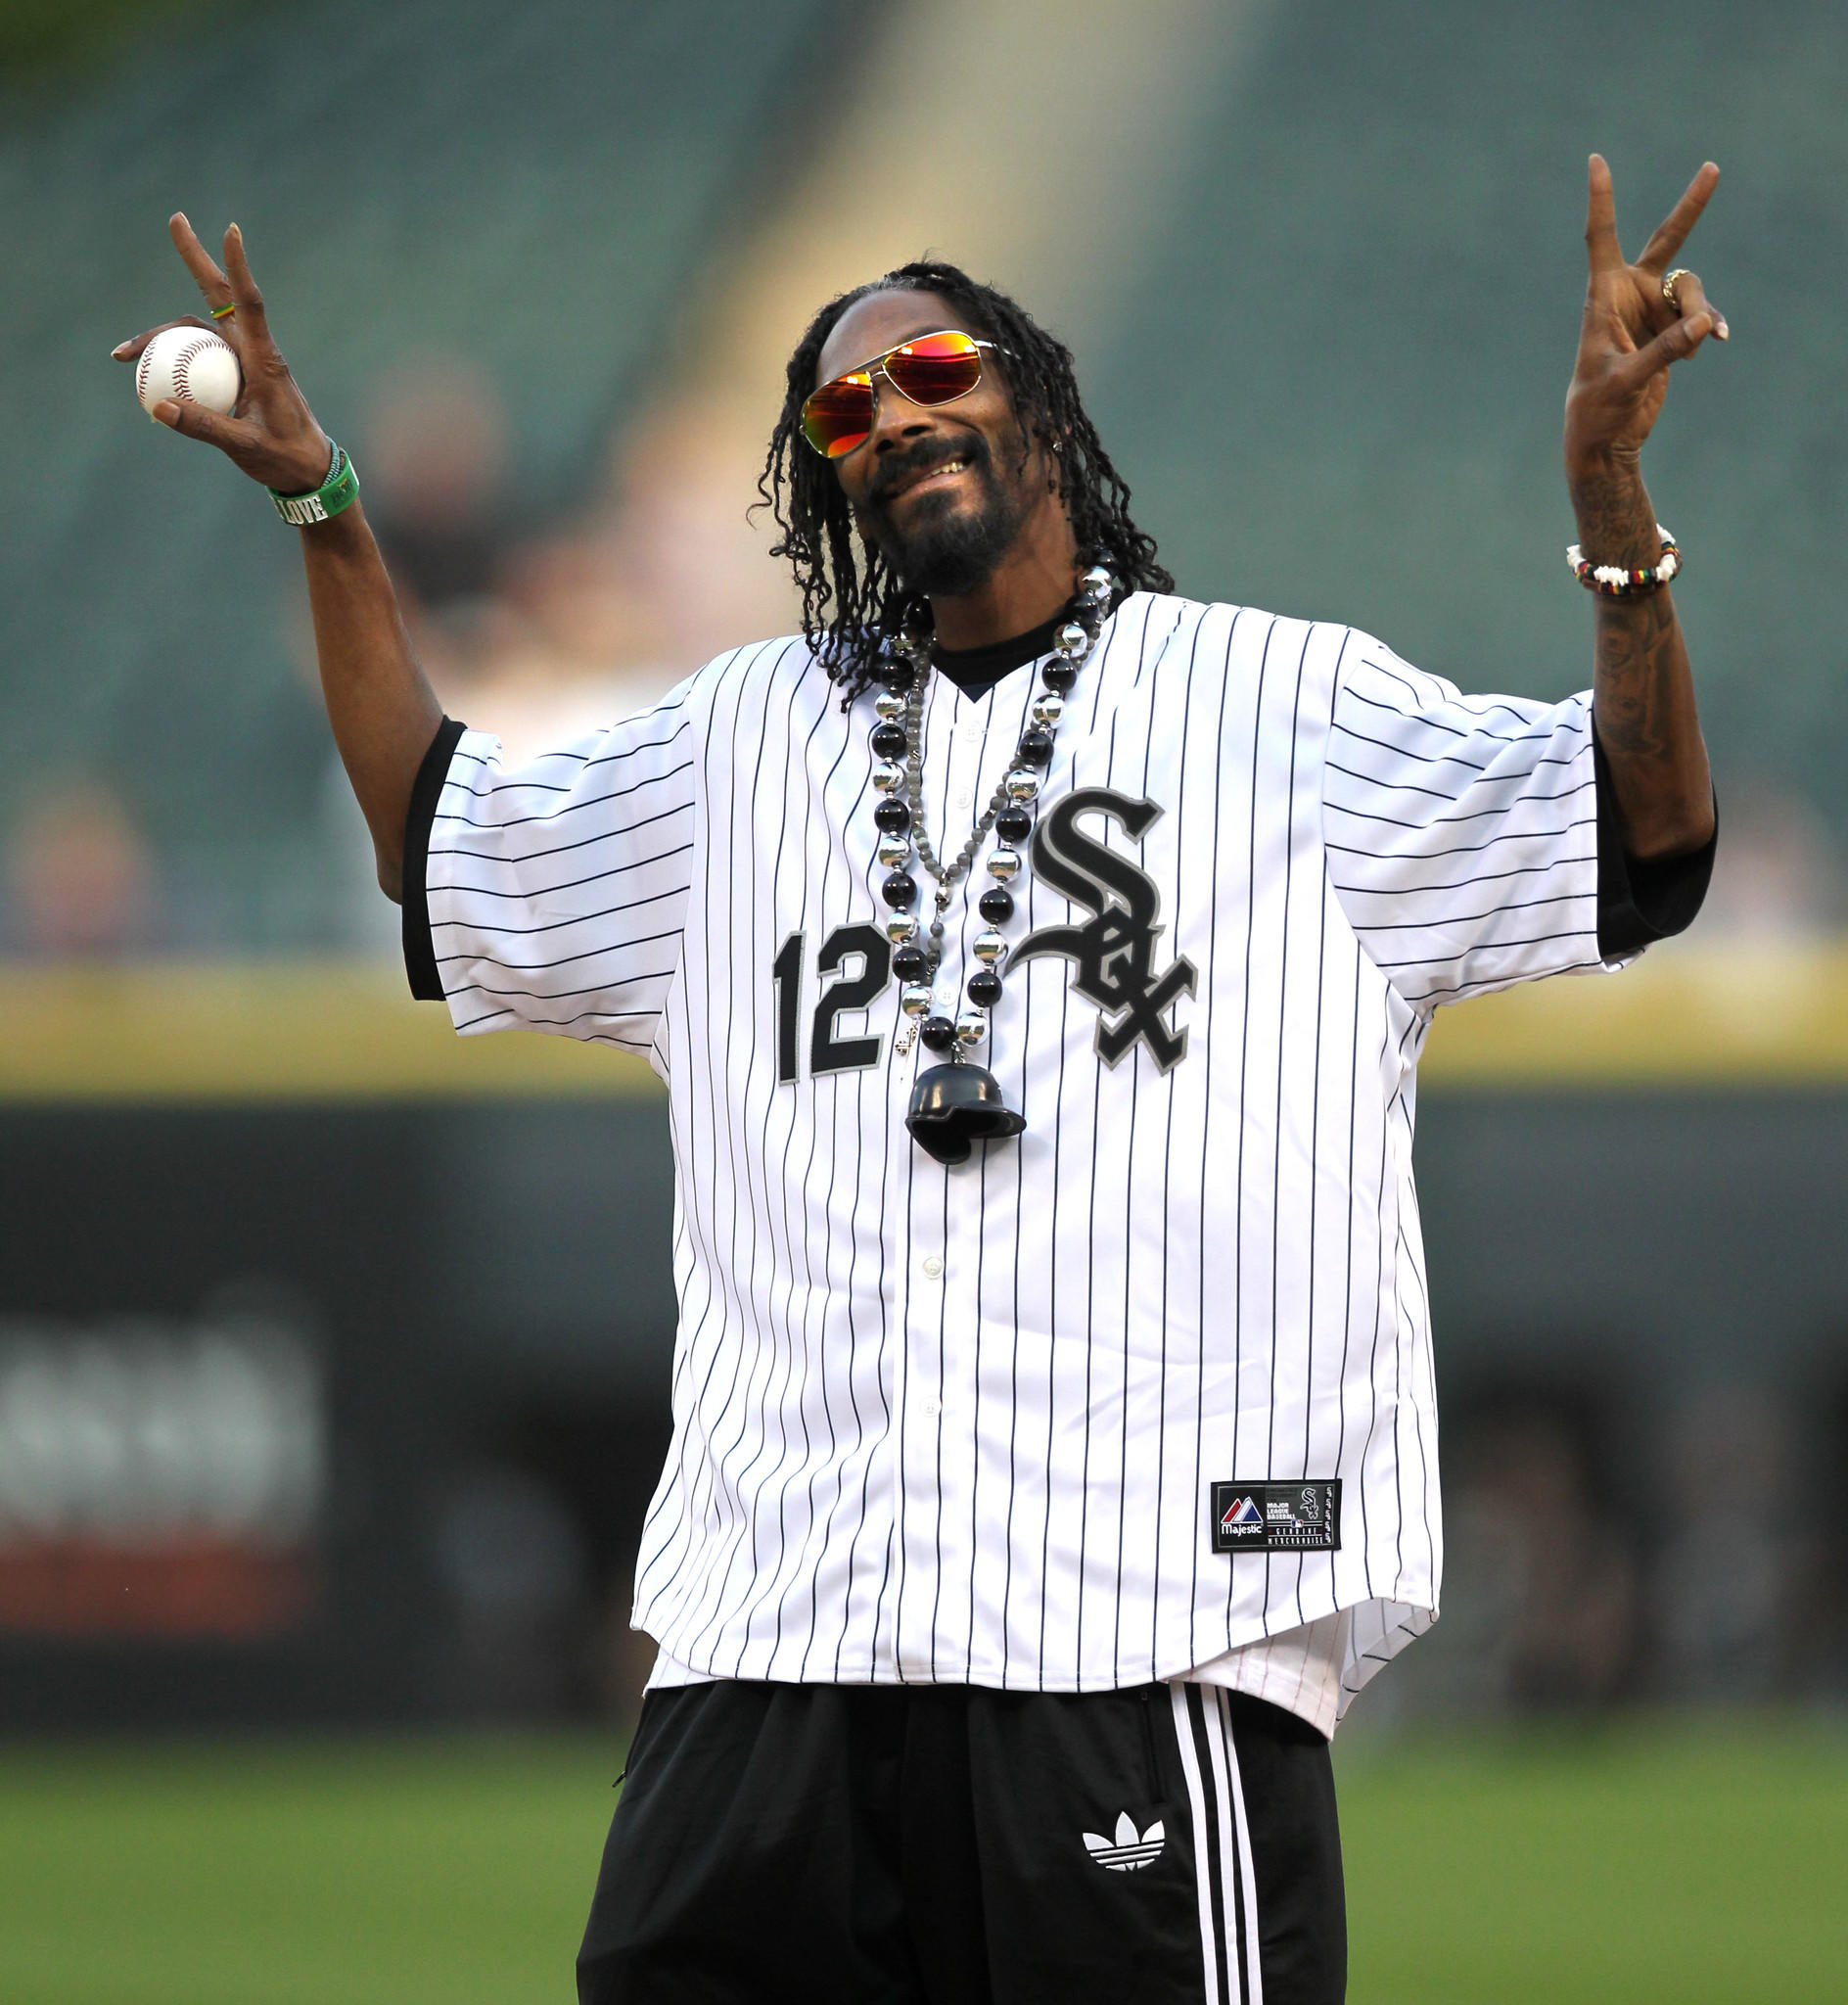 Snoop Dogg gestures to the crowd before throwing out the ceremonial first pitch before a game between the Chicago White Sox and the Minnesota Twins.